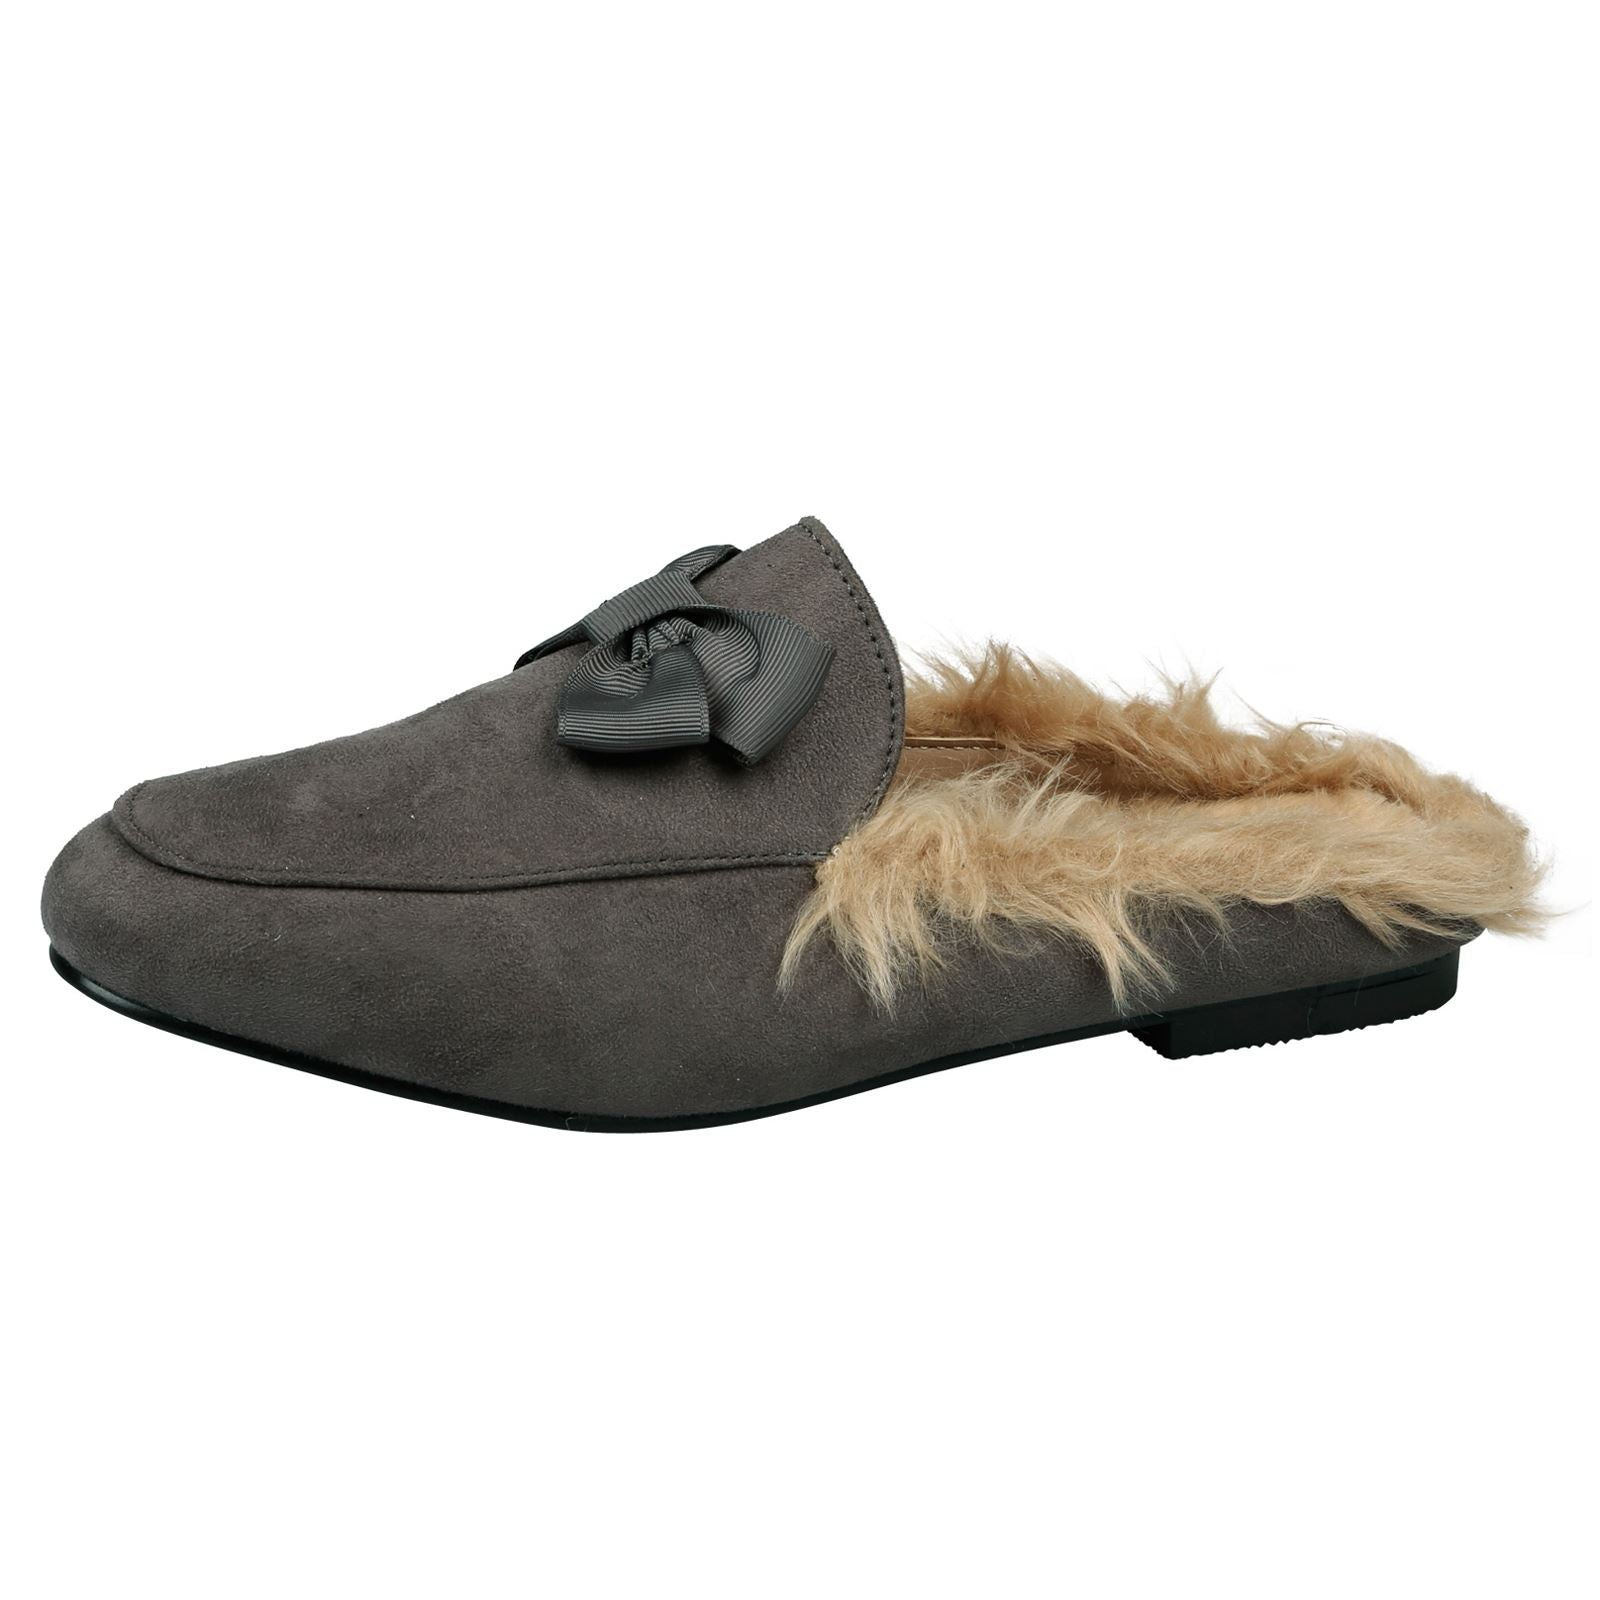 Dorothy Backless Loafers with Fur in Grey Faux Suede